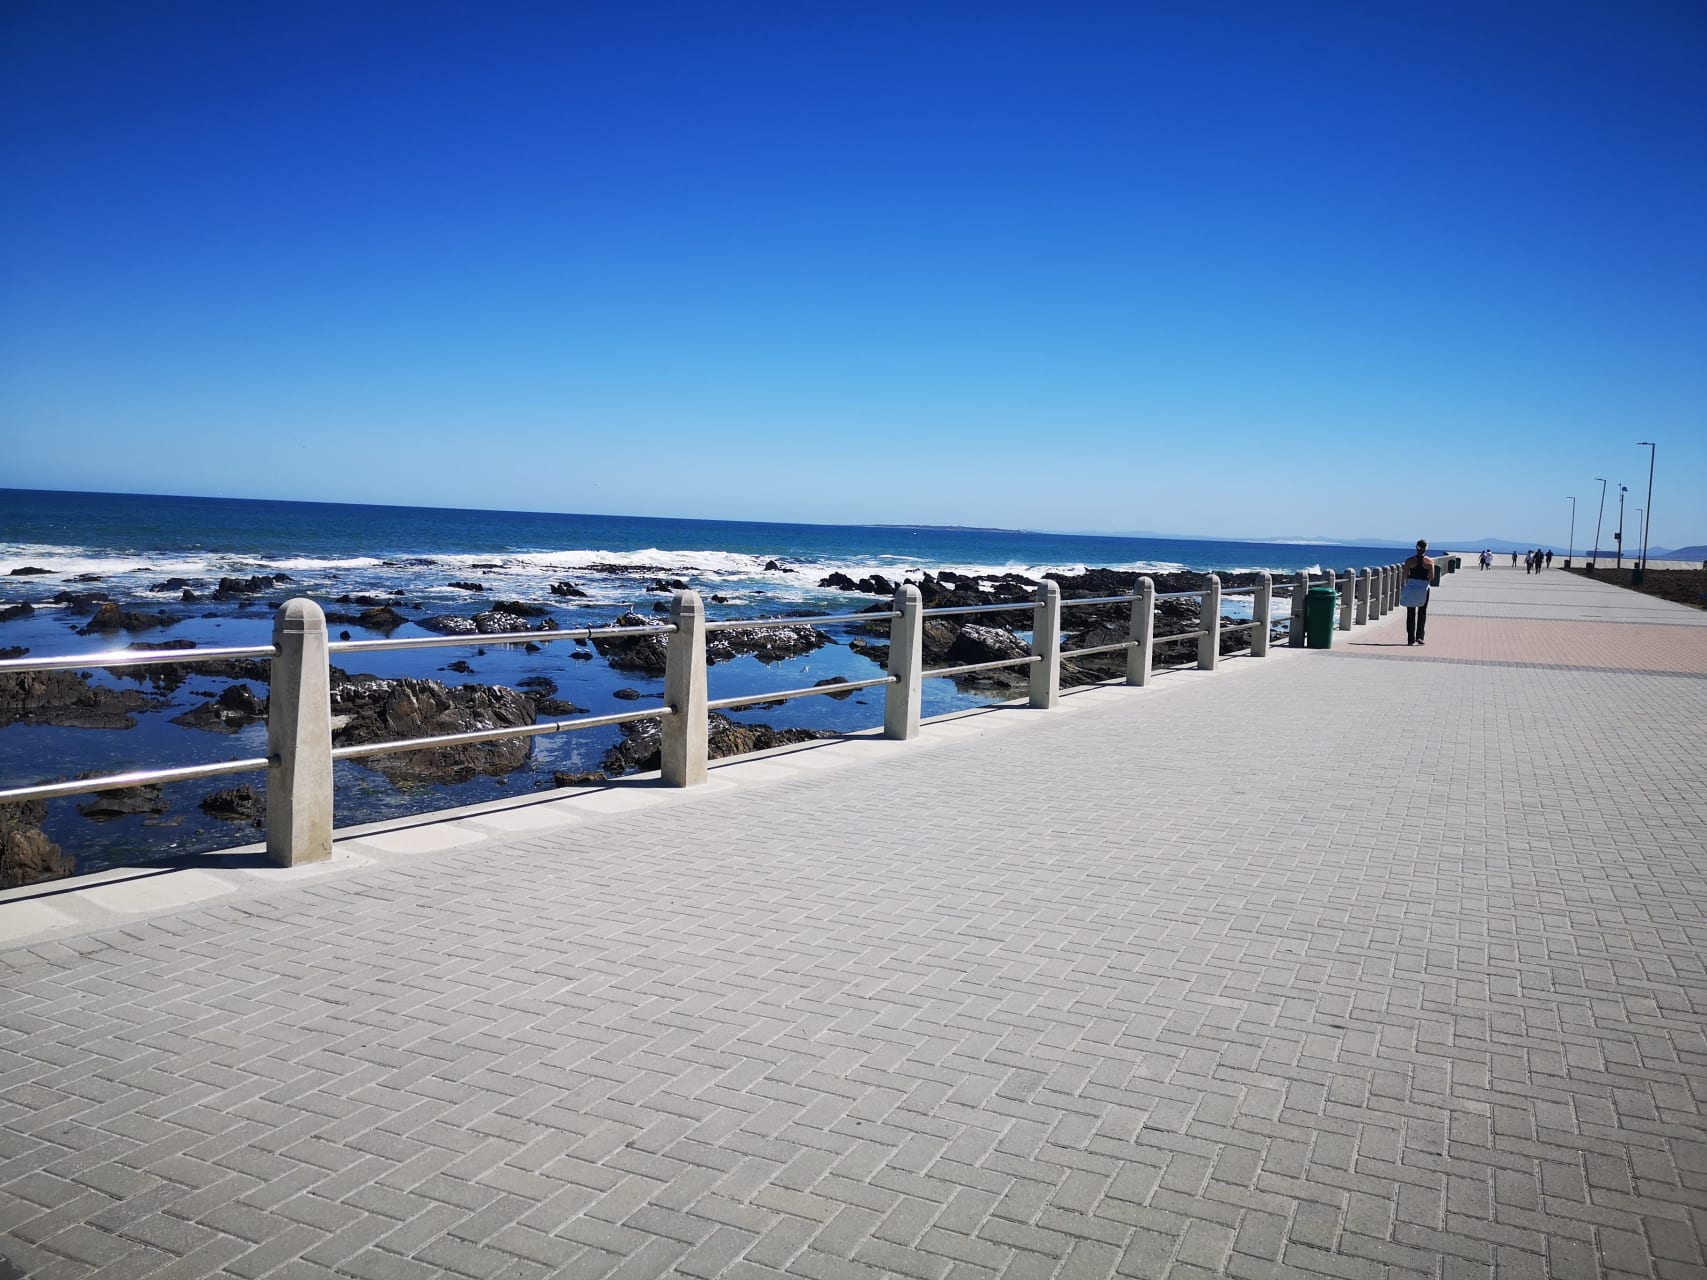 Cape Town - A promenade walk along the ocean and a chat